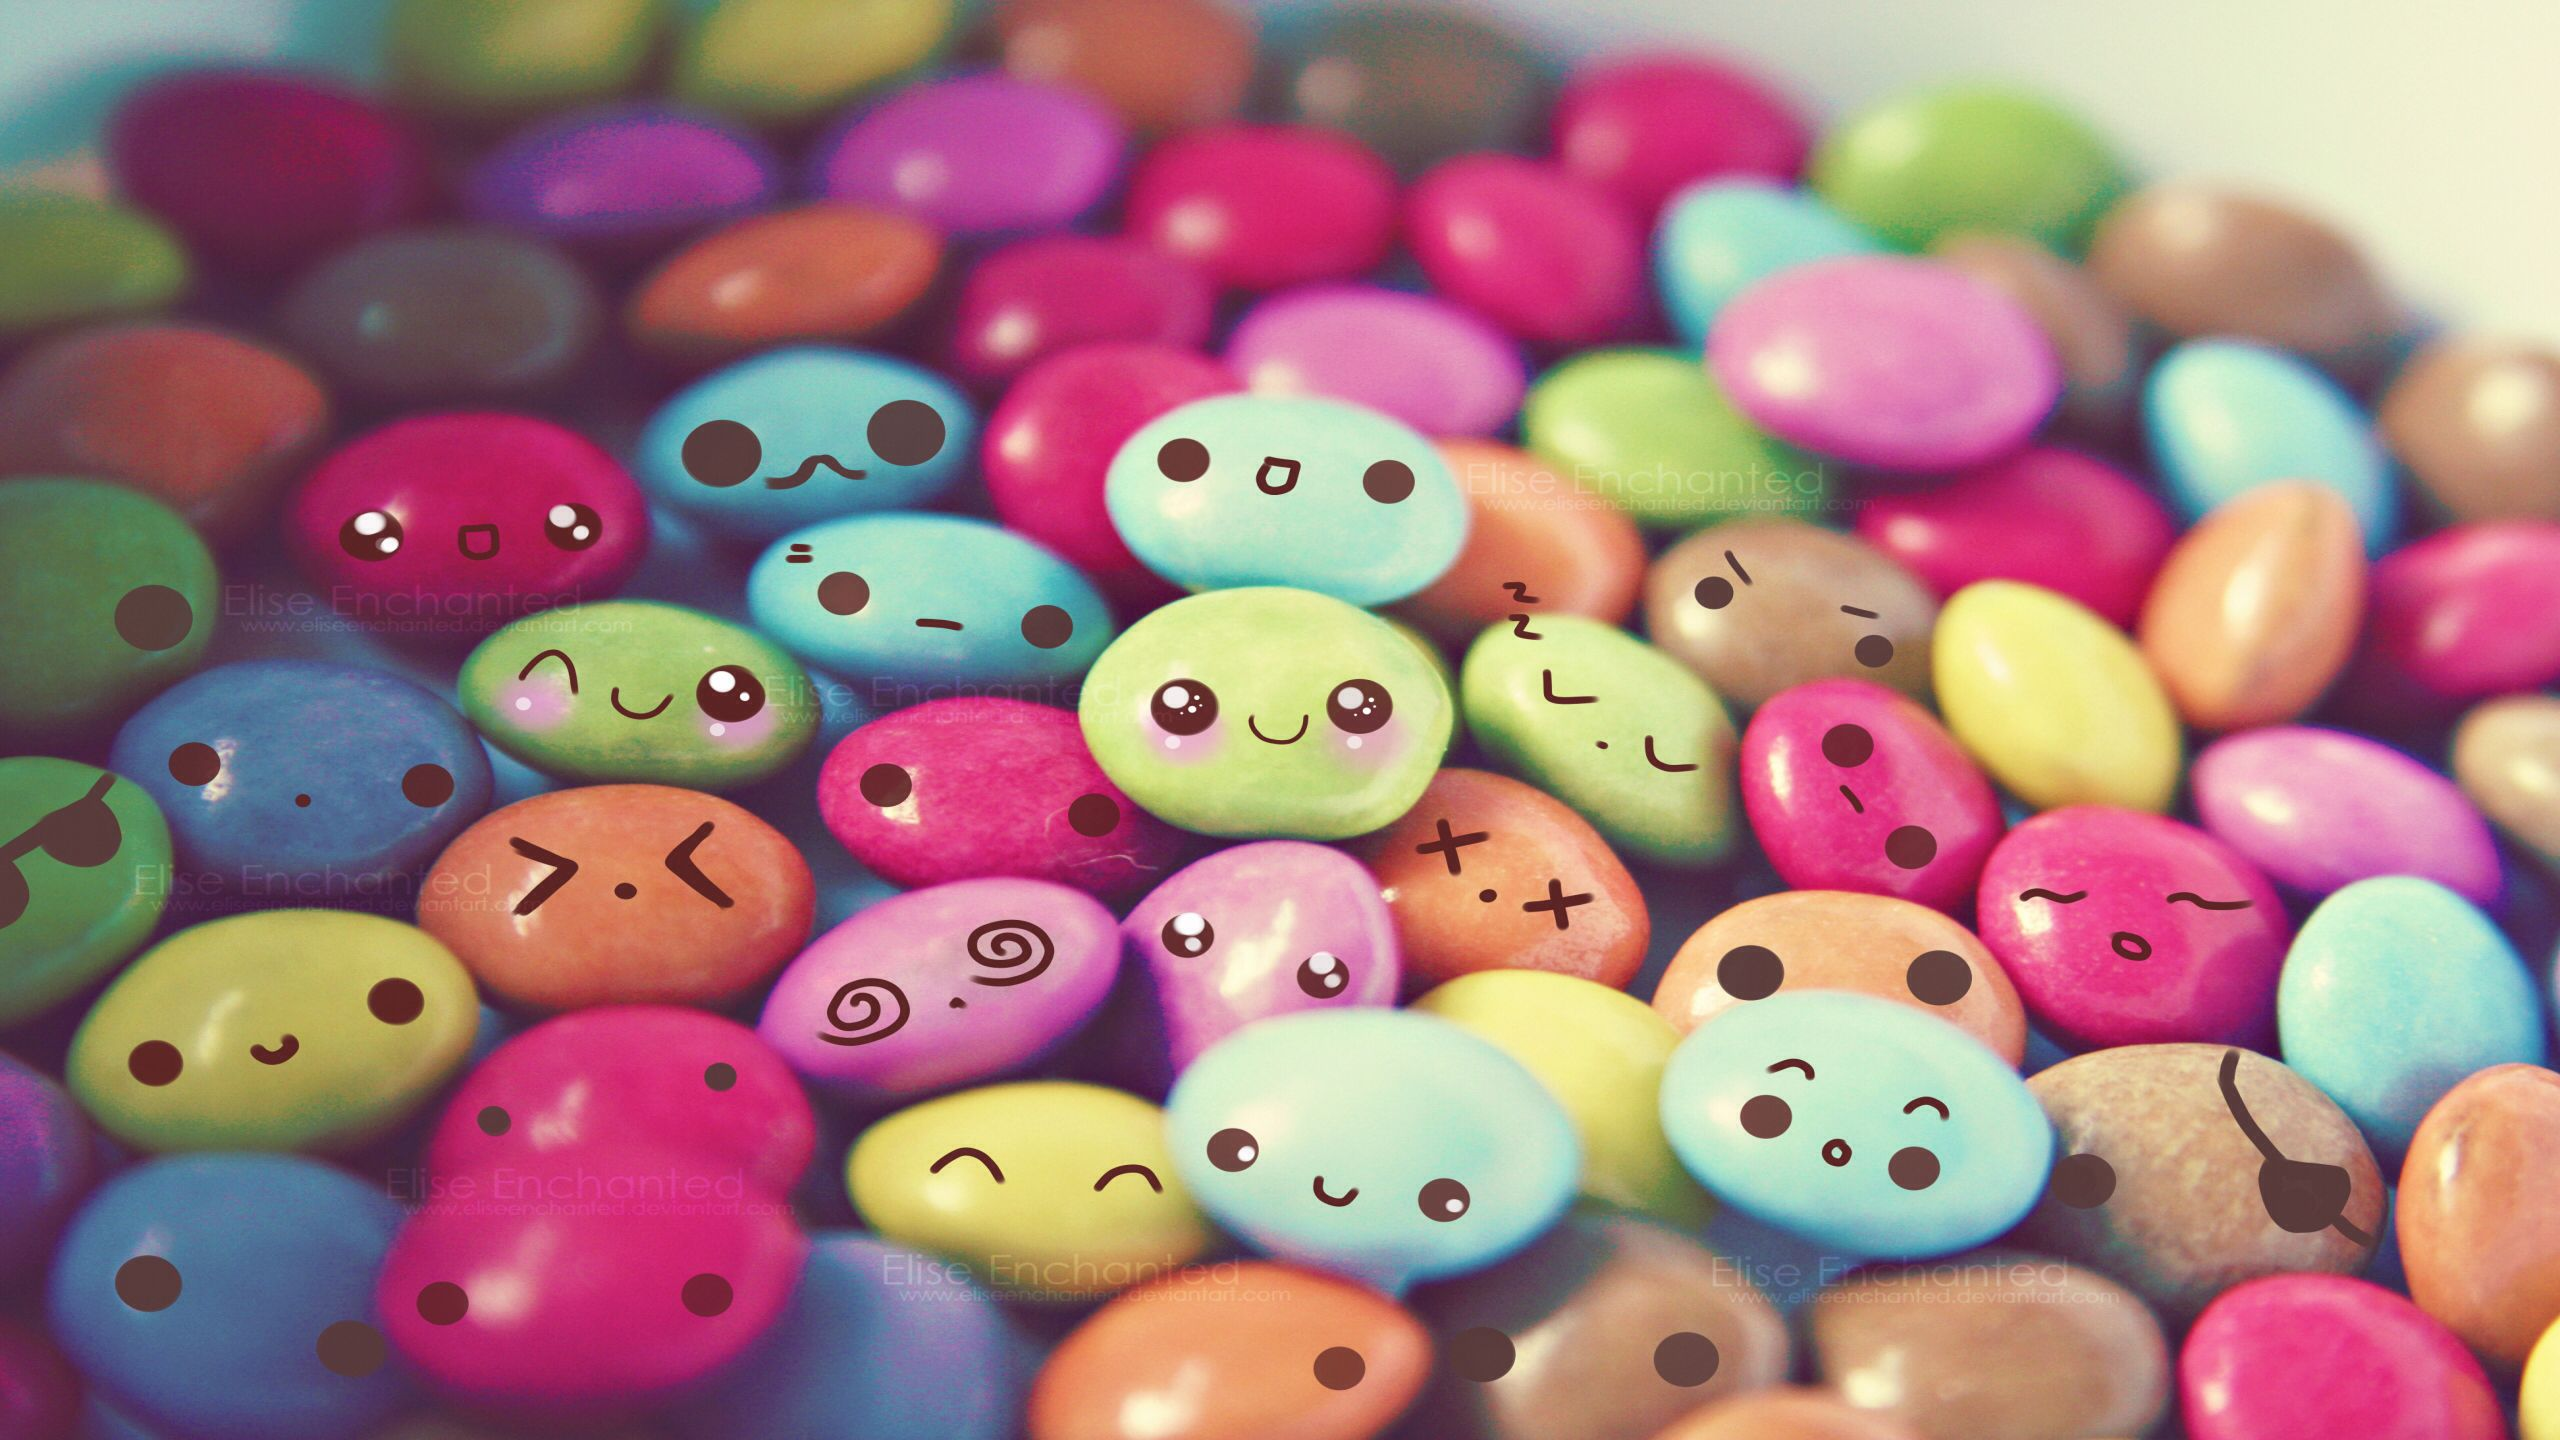 Smarties Super Kawaii Pinterest Cute Wallpapers And Kitty Squishy Quotrice Ball Onigiriquot Online Store Powered By Storenvy